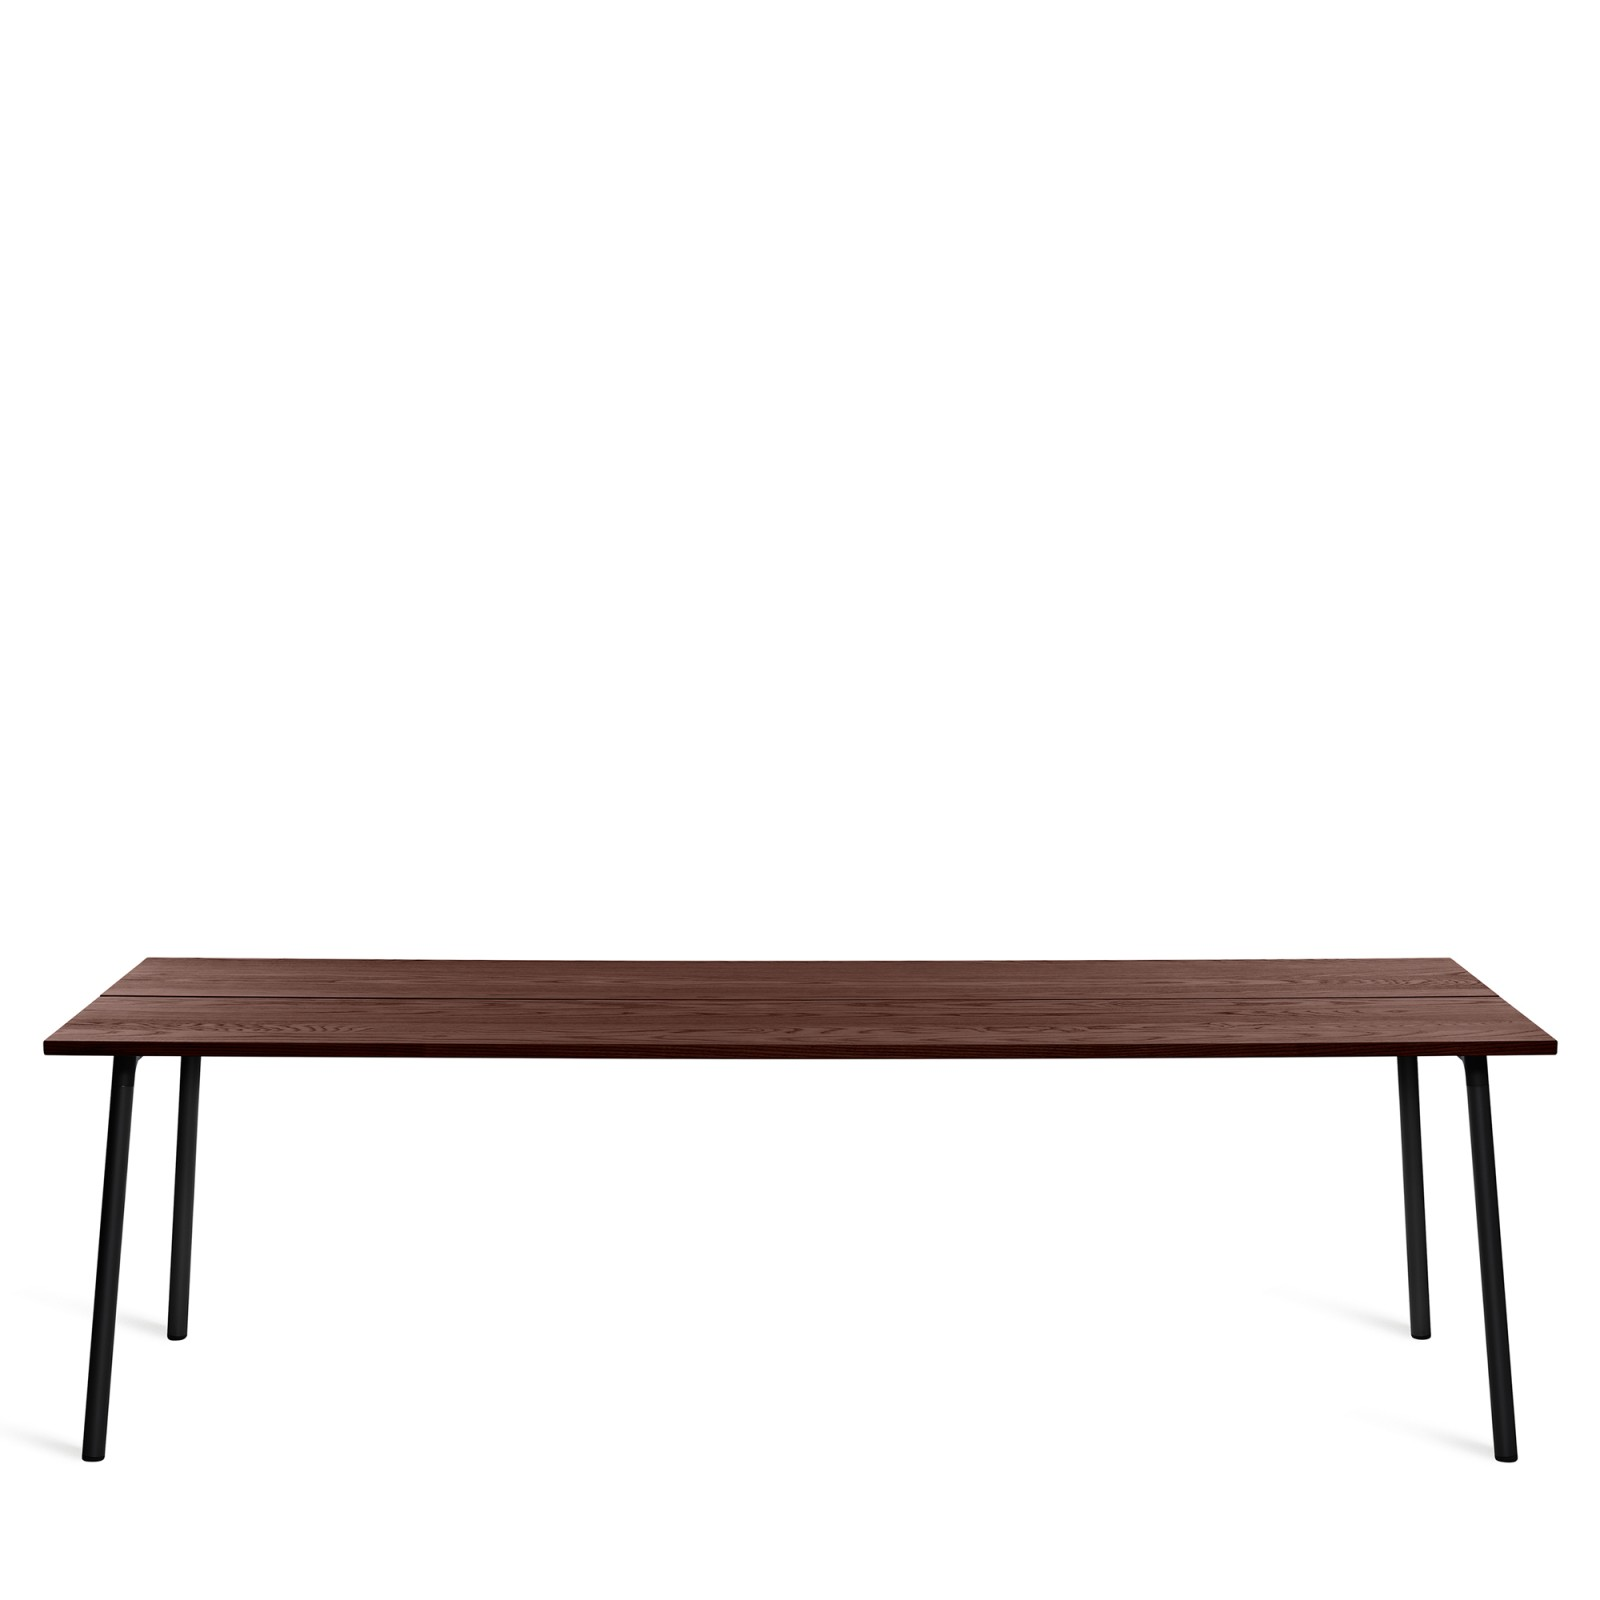 Run Dining Table Rectangular 244cm, Black Powder Coated, Walnut